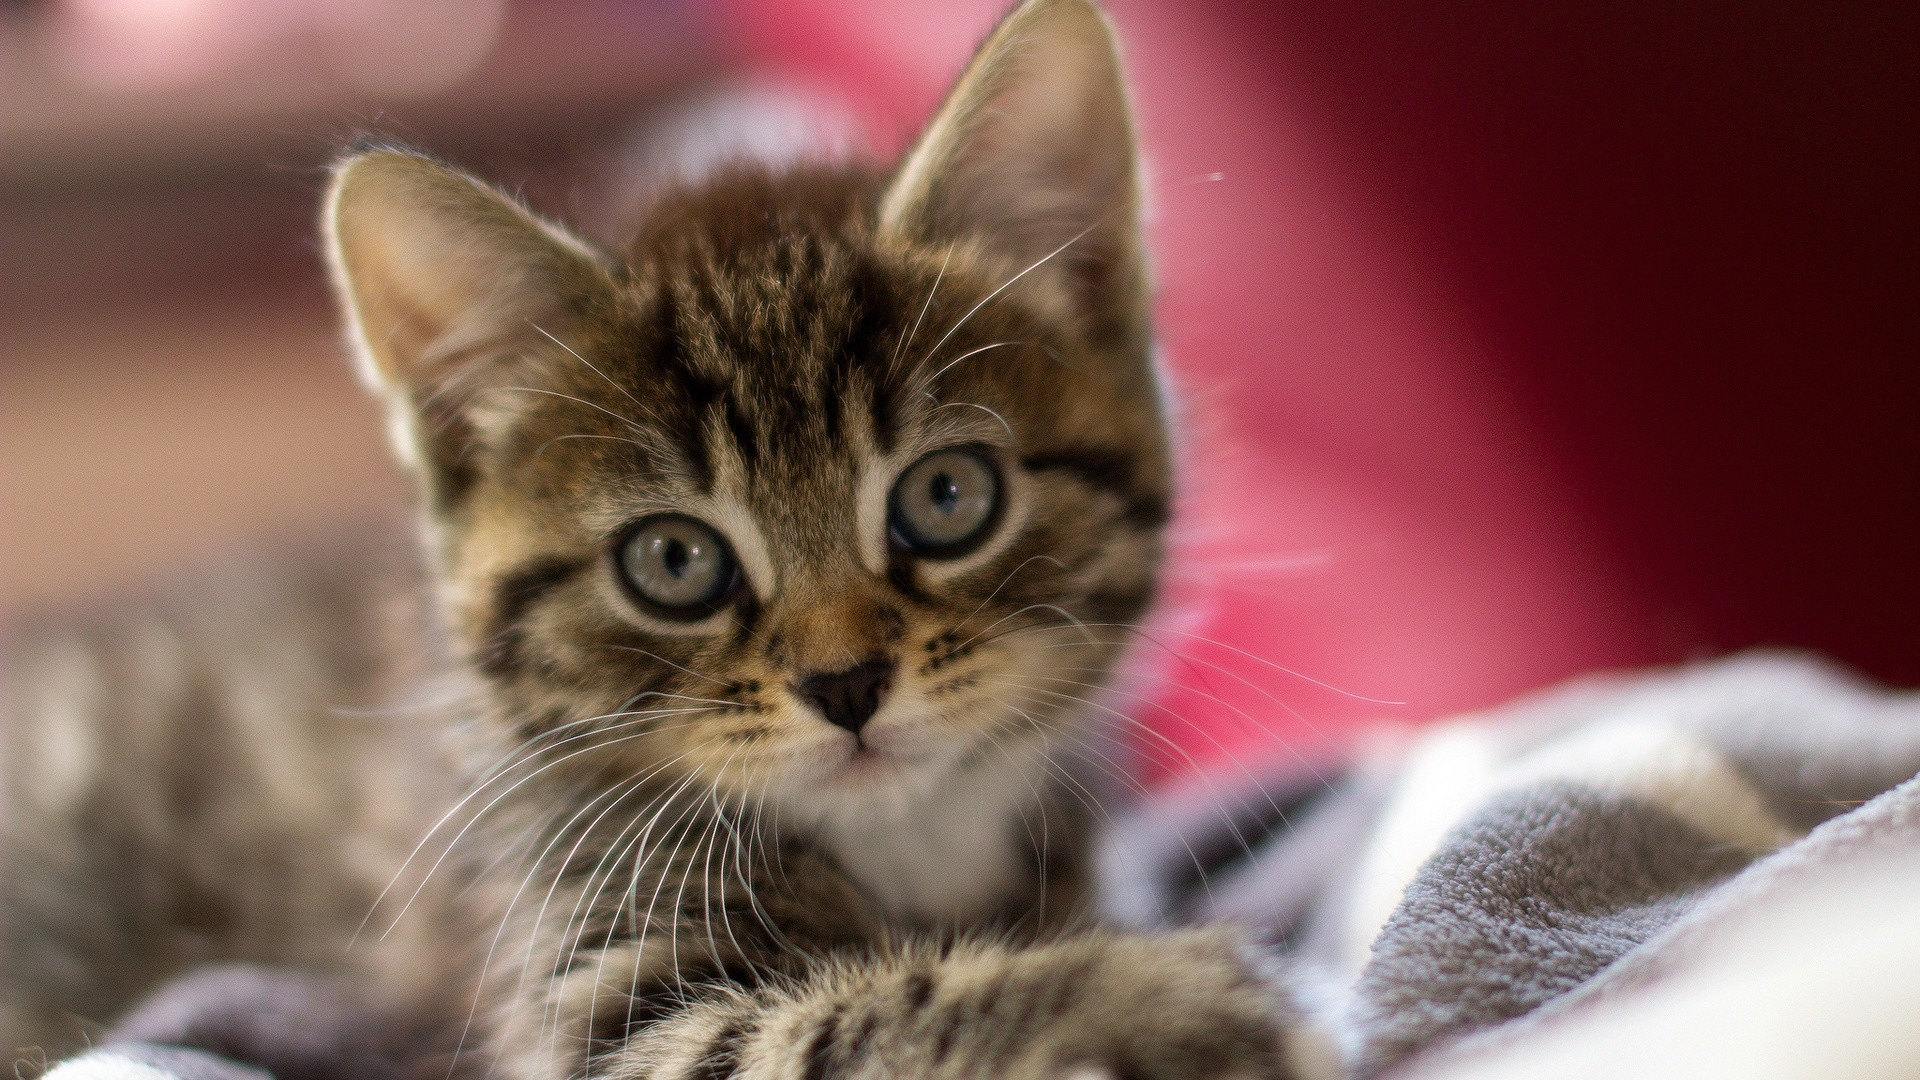 1920x1080 Pictures Of Cute Kittens Wallpapers (68 Wallpapers)